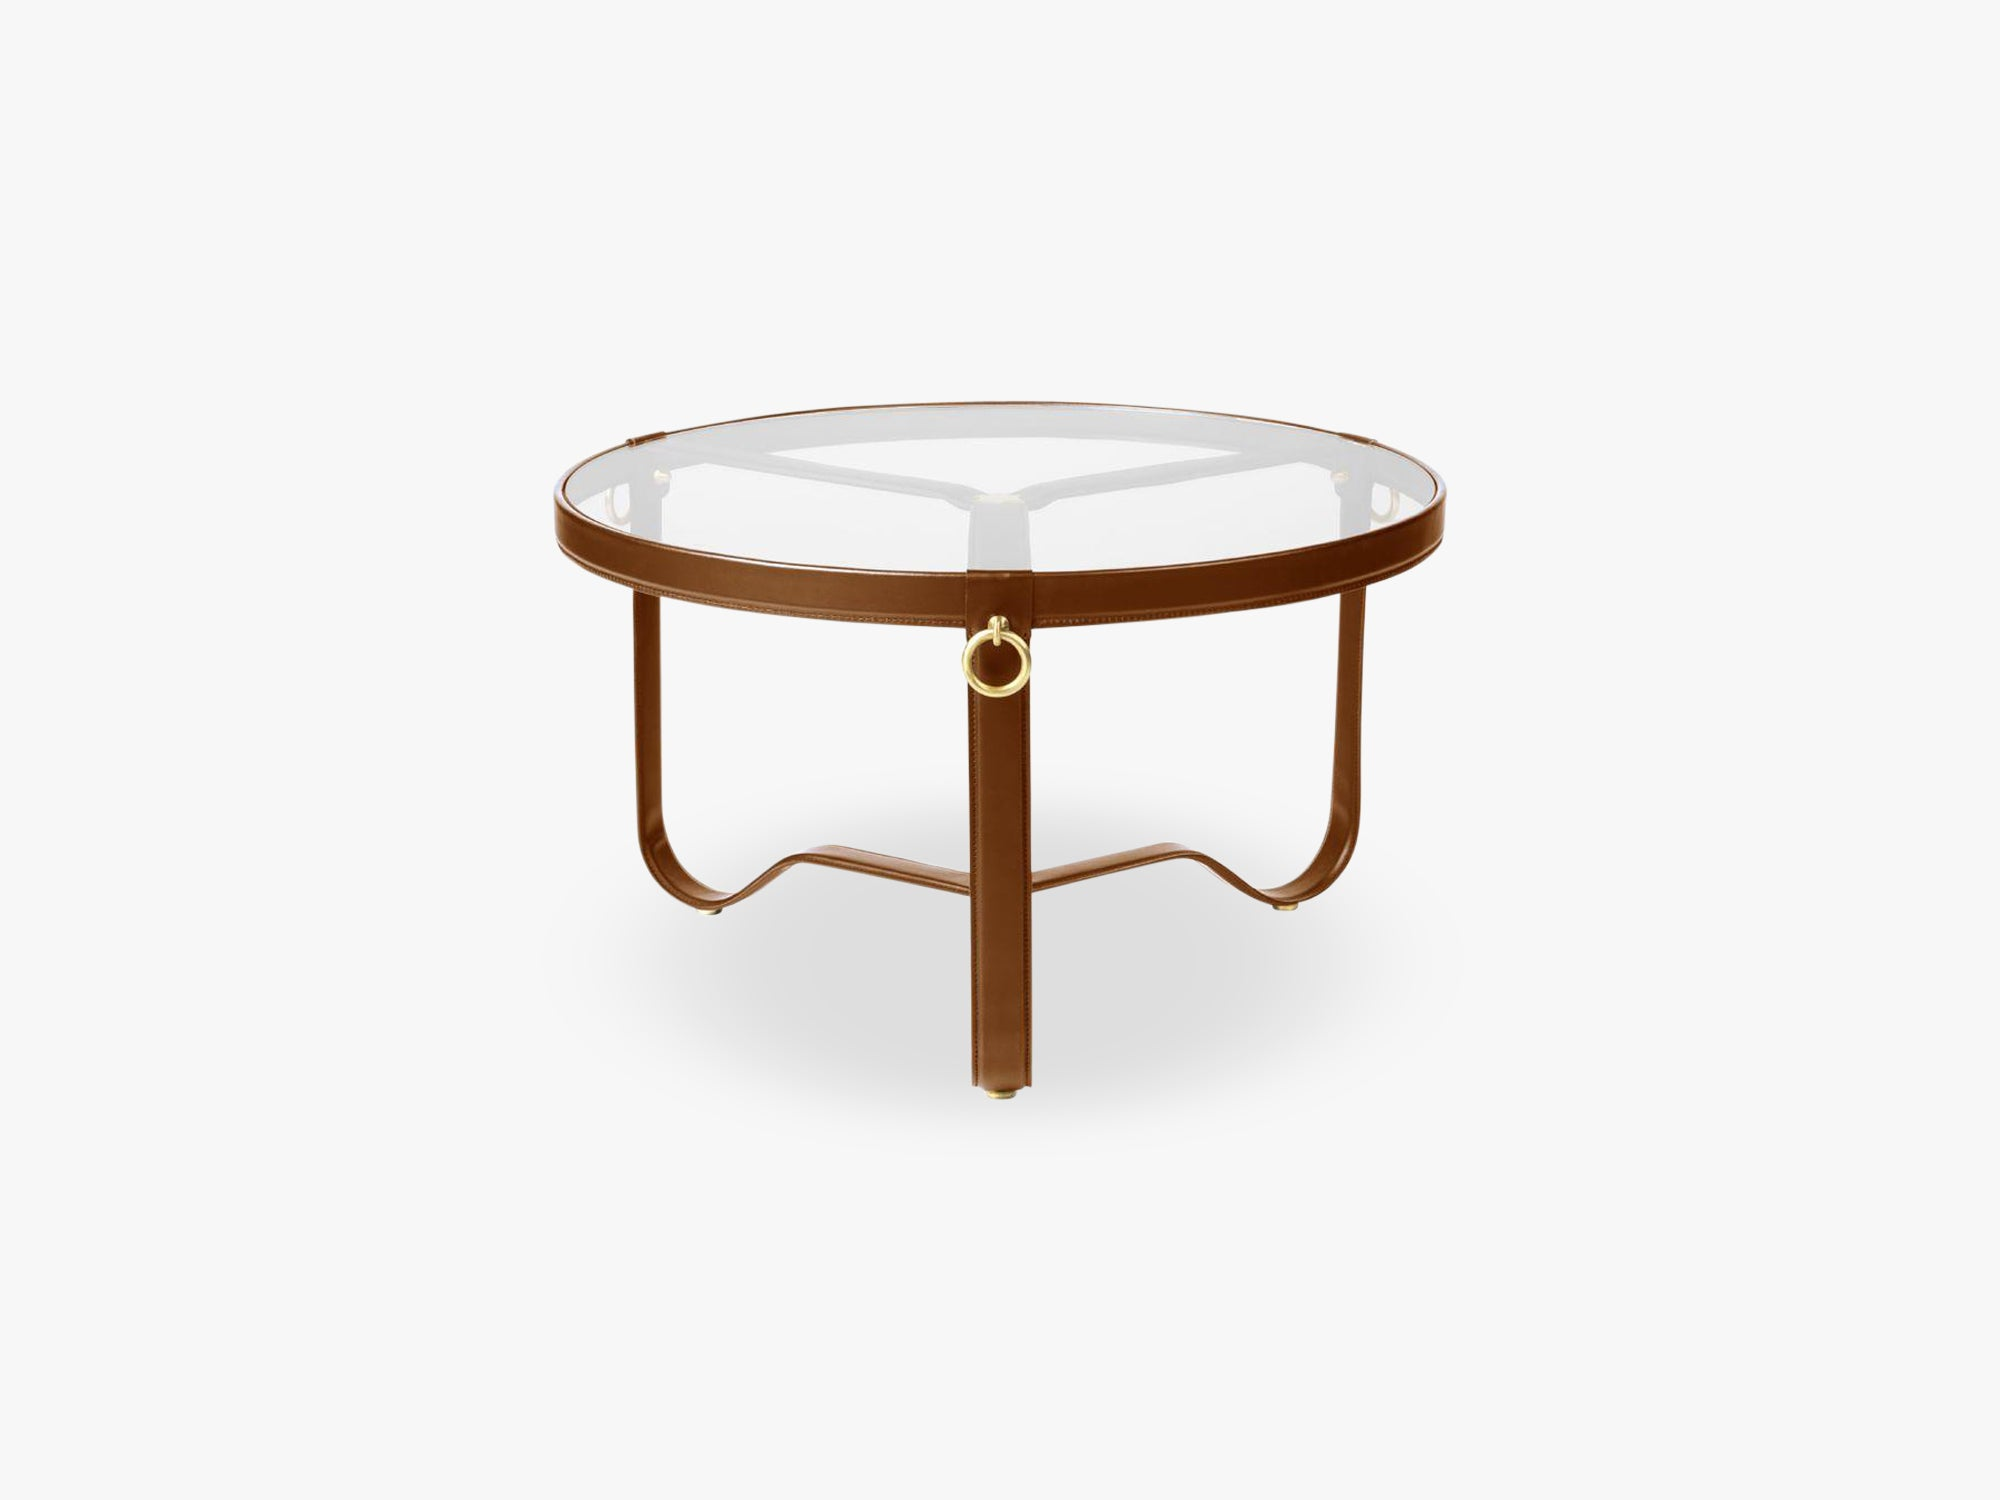 Adnet Coffee Table - Ø70, Tan Leather fra GUBI